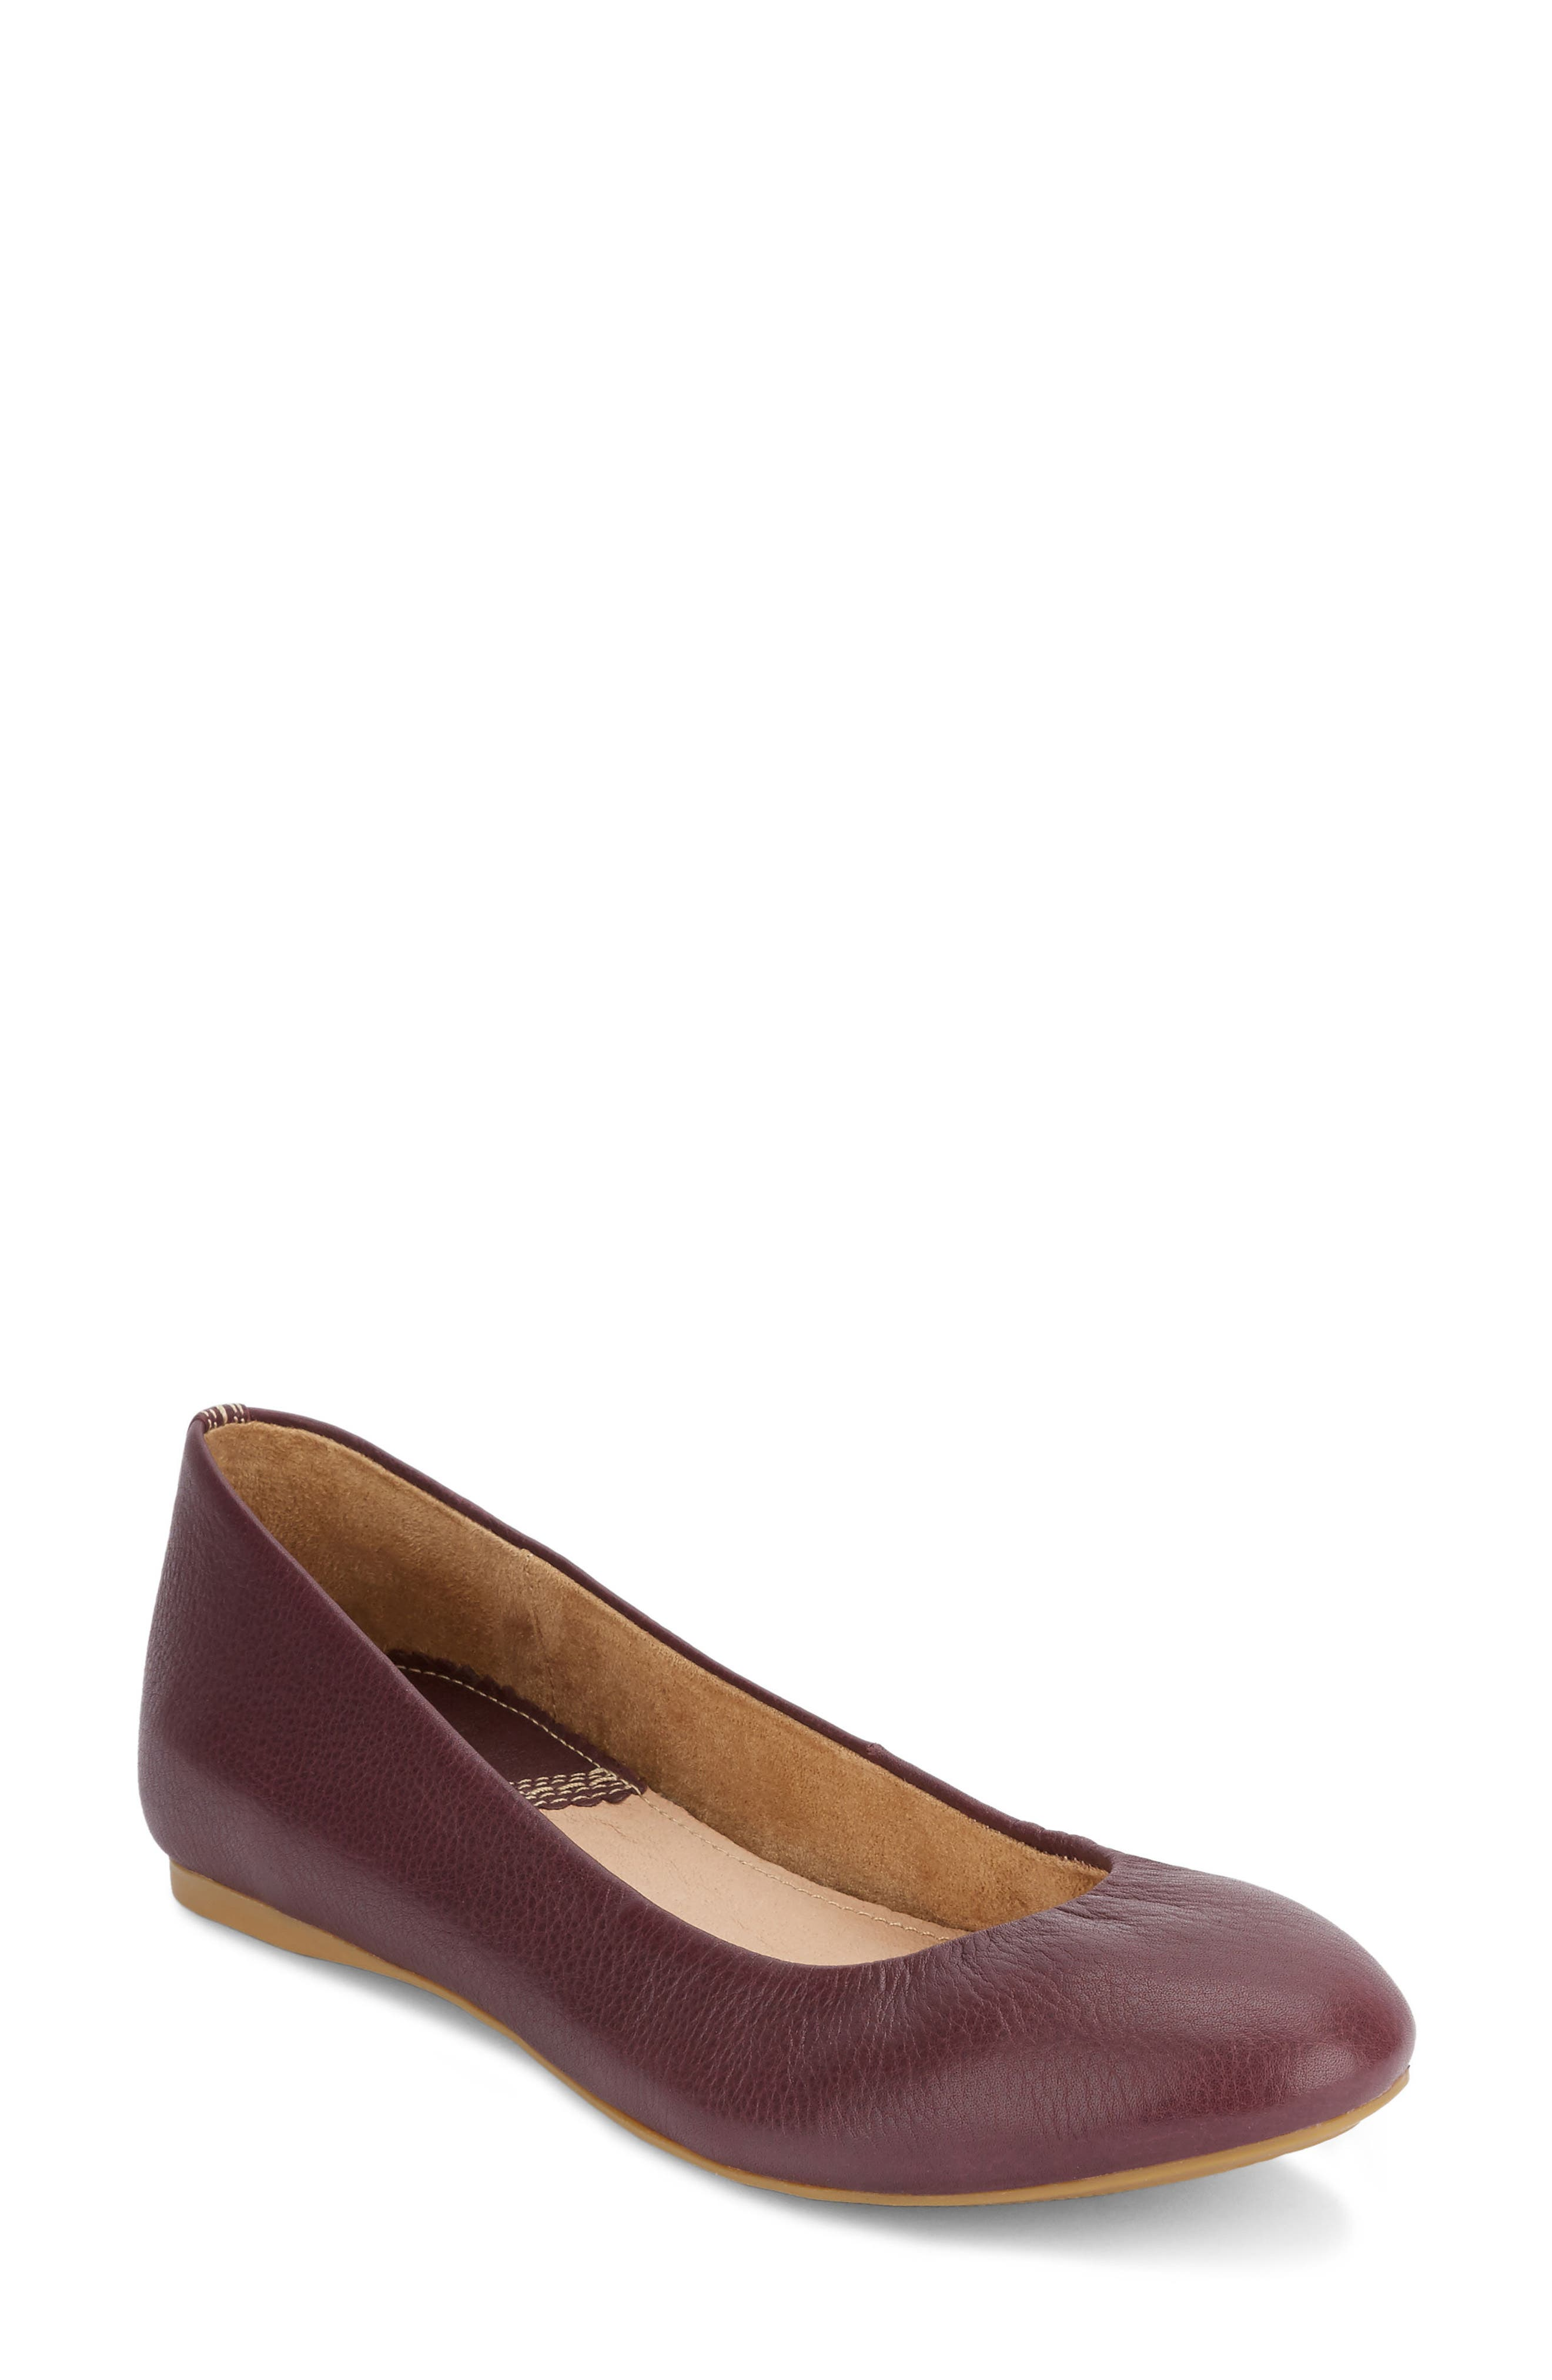 Felicity Ballet Flat,                             Main thumbnail 1, color,                             Eggplant Leather